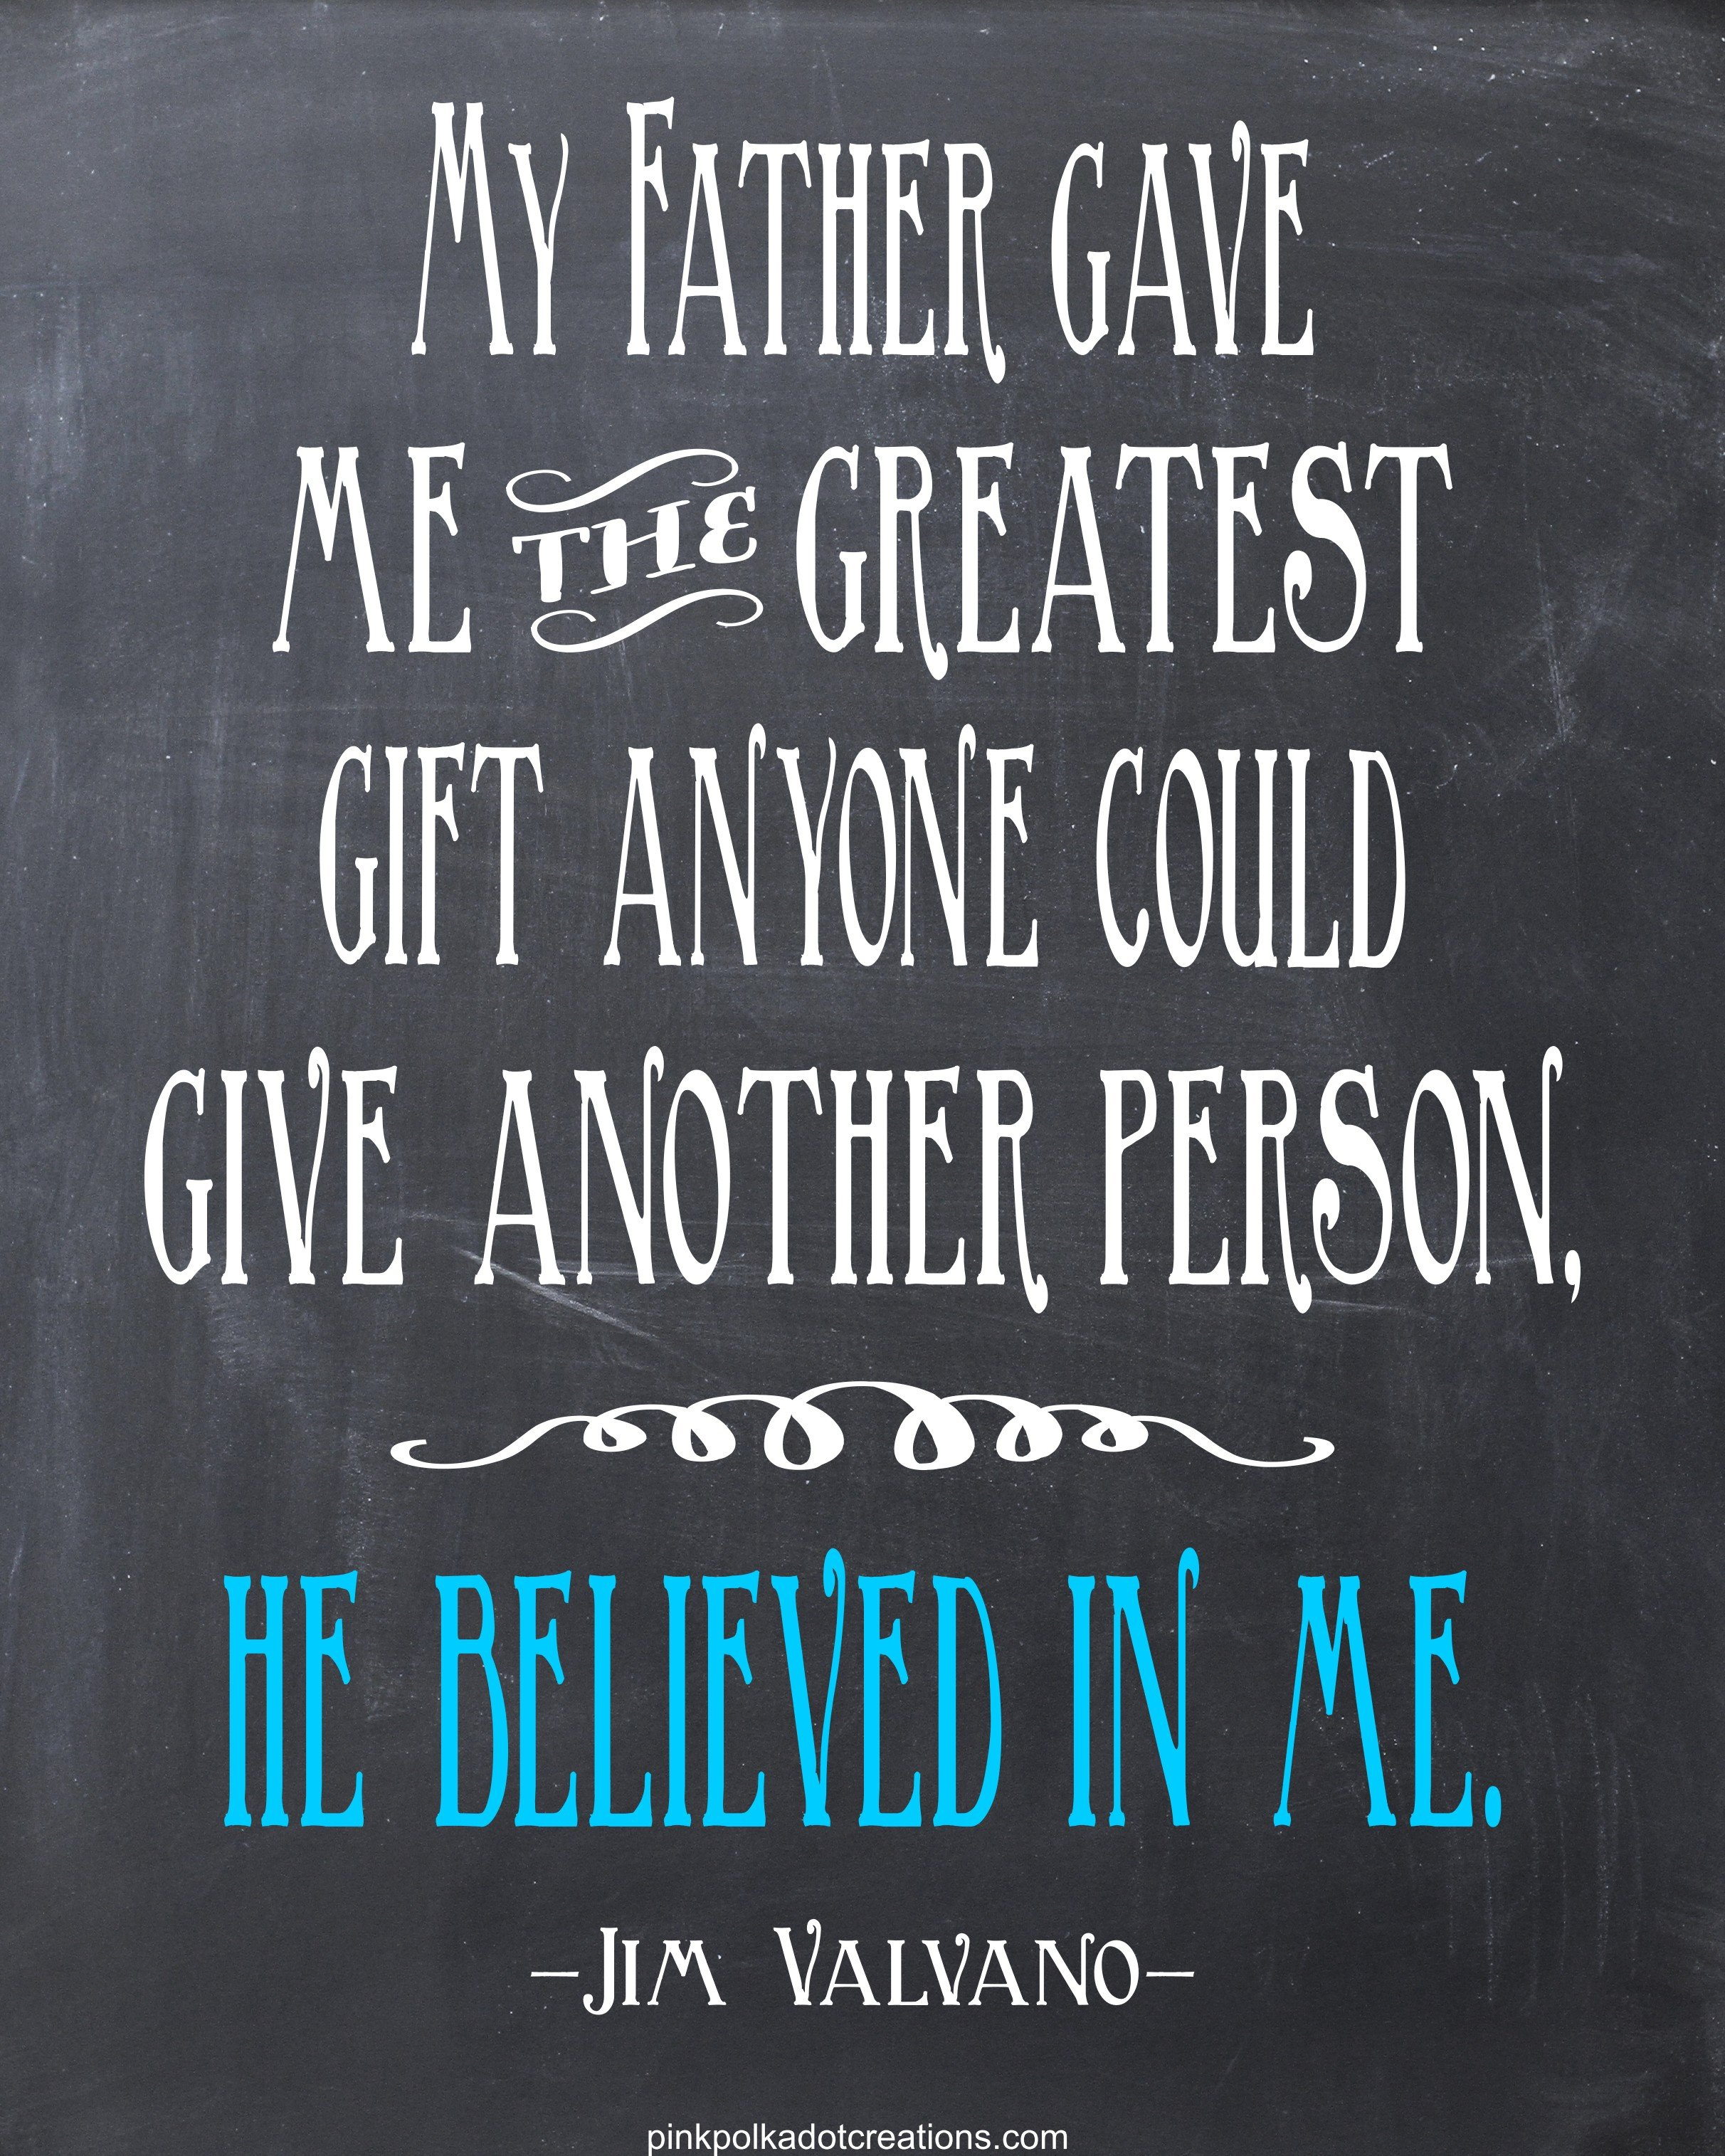 Famous Quotes Fatherhood: Fathers Day Sports Quotes. QuotesGram